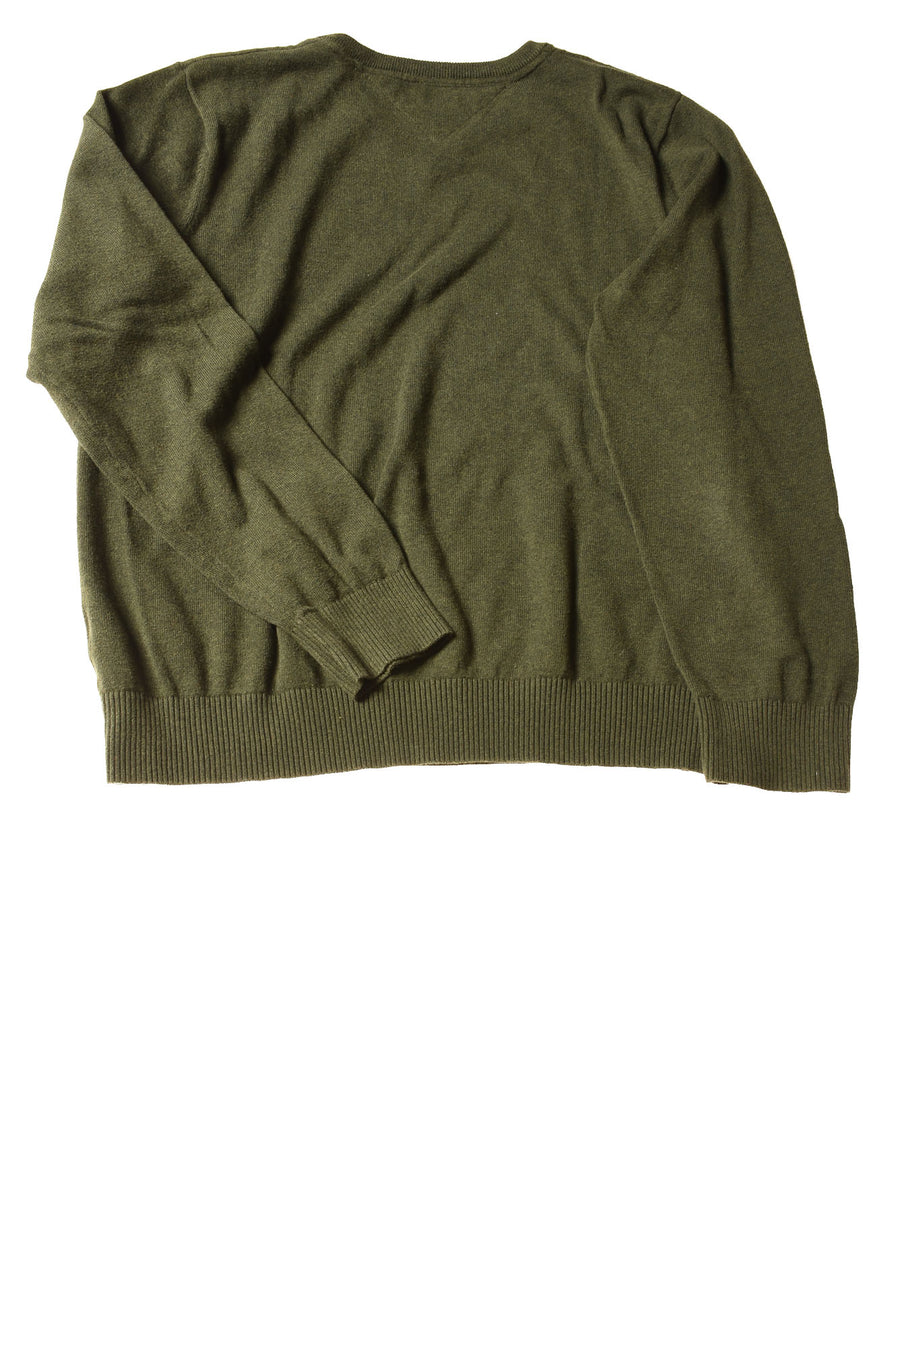 Men's Sweater By Tommy Hilfiger